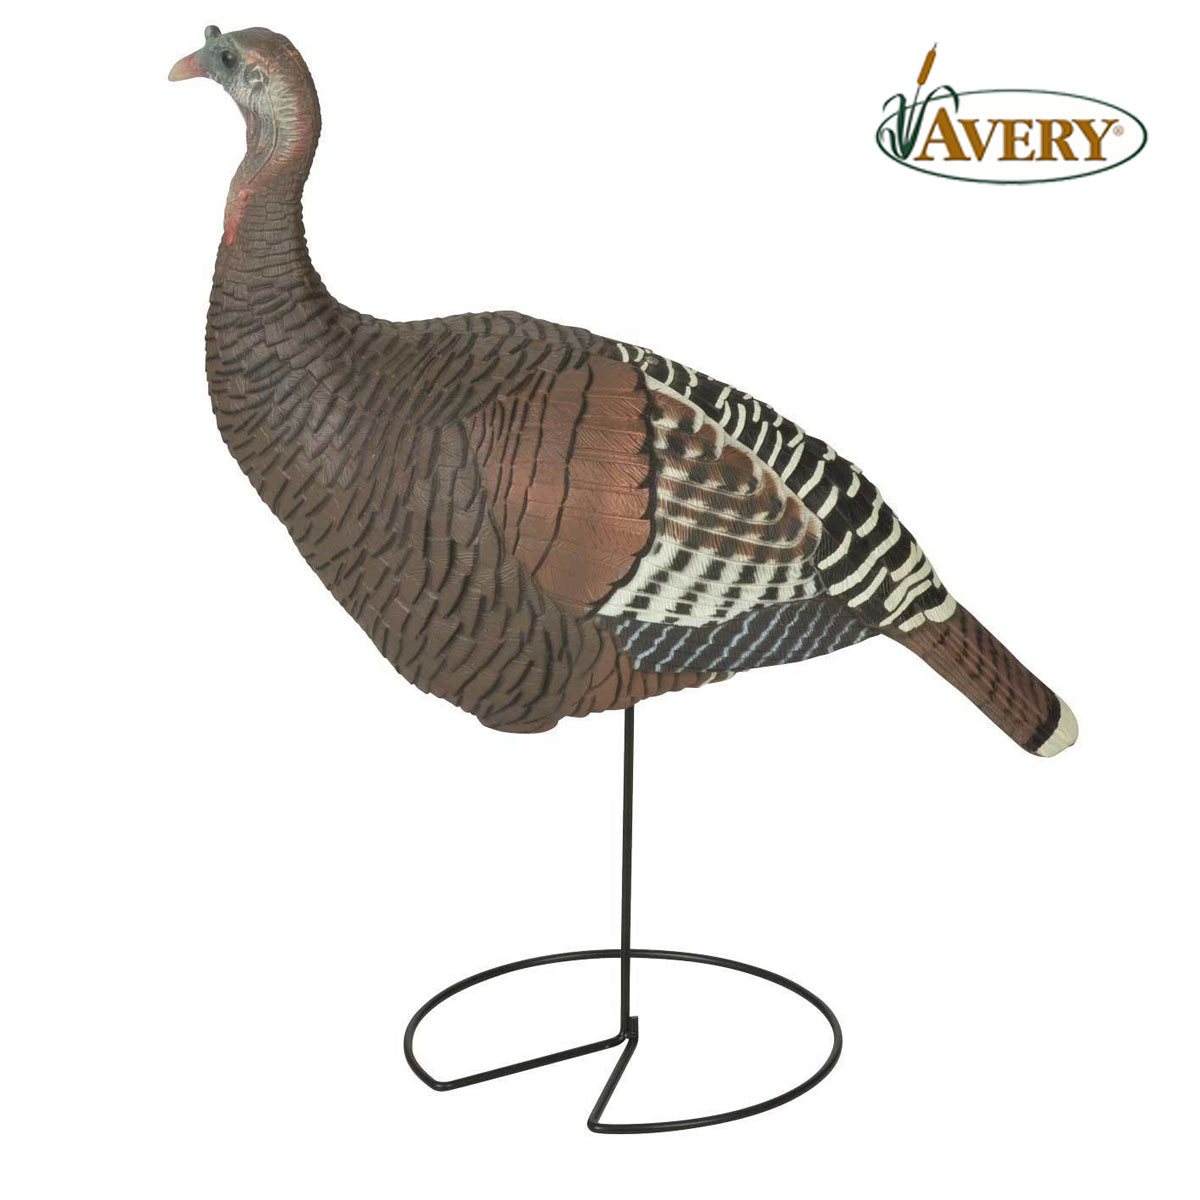 Avery GHG Upright Hen Decoy Merriam Single